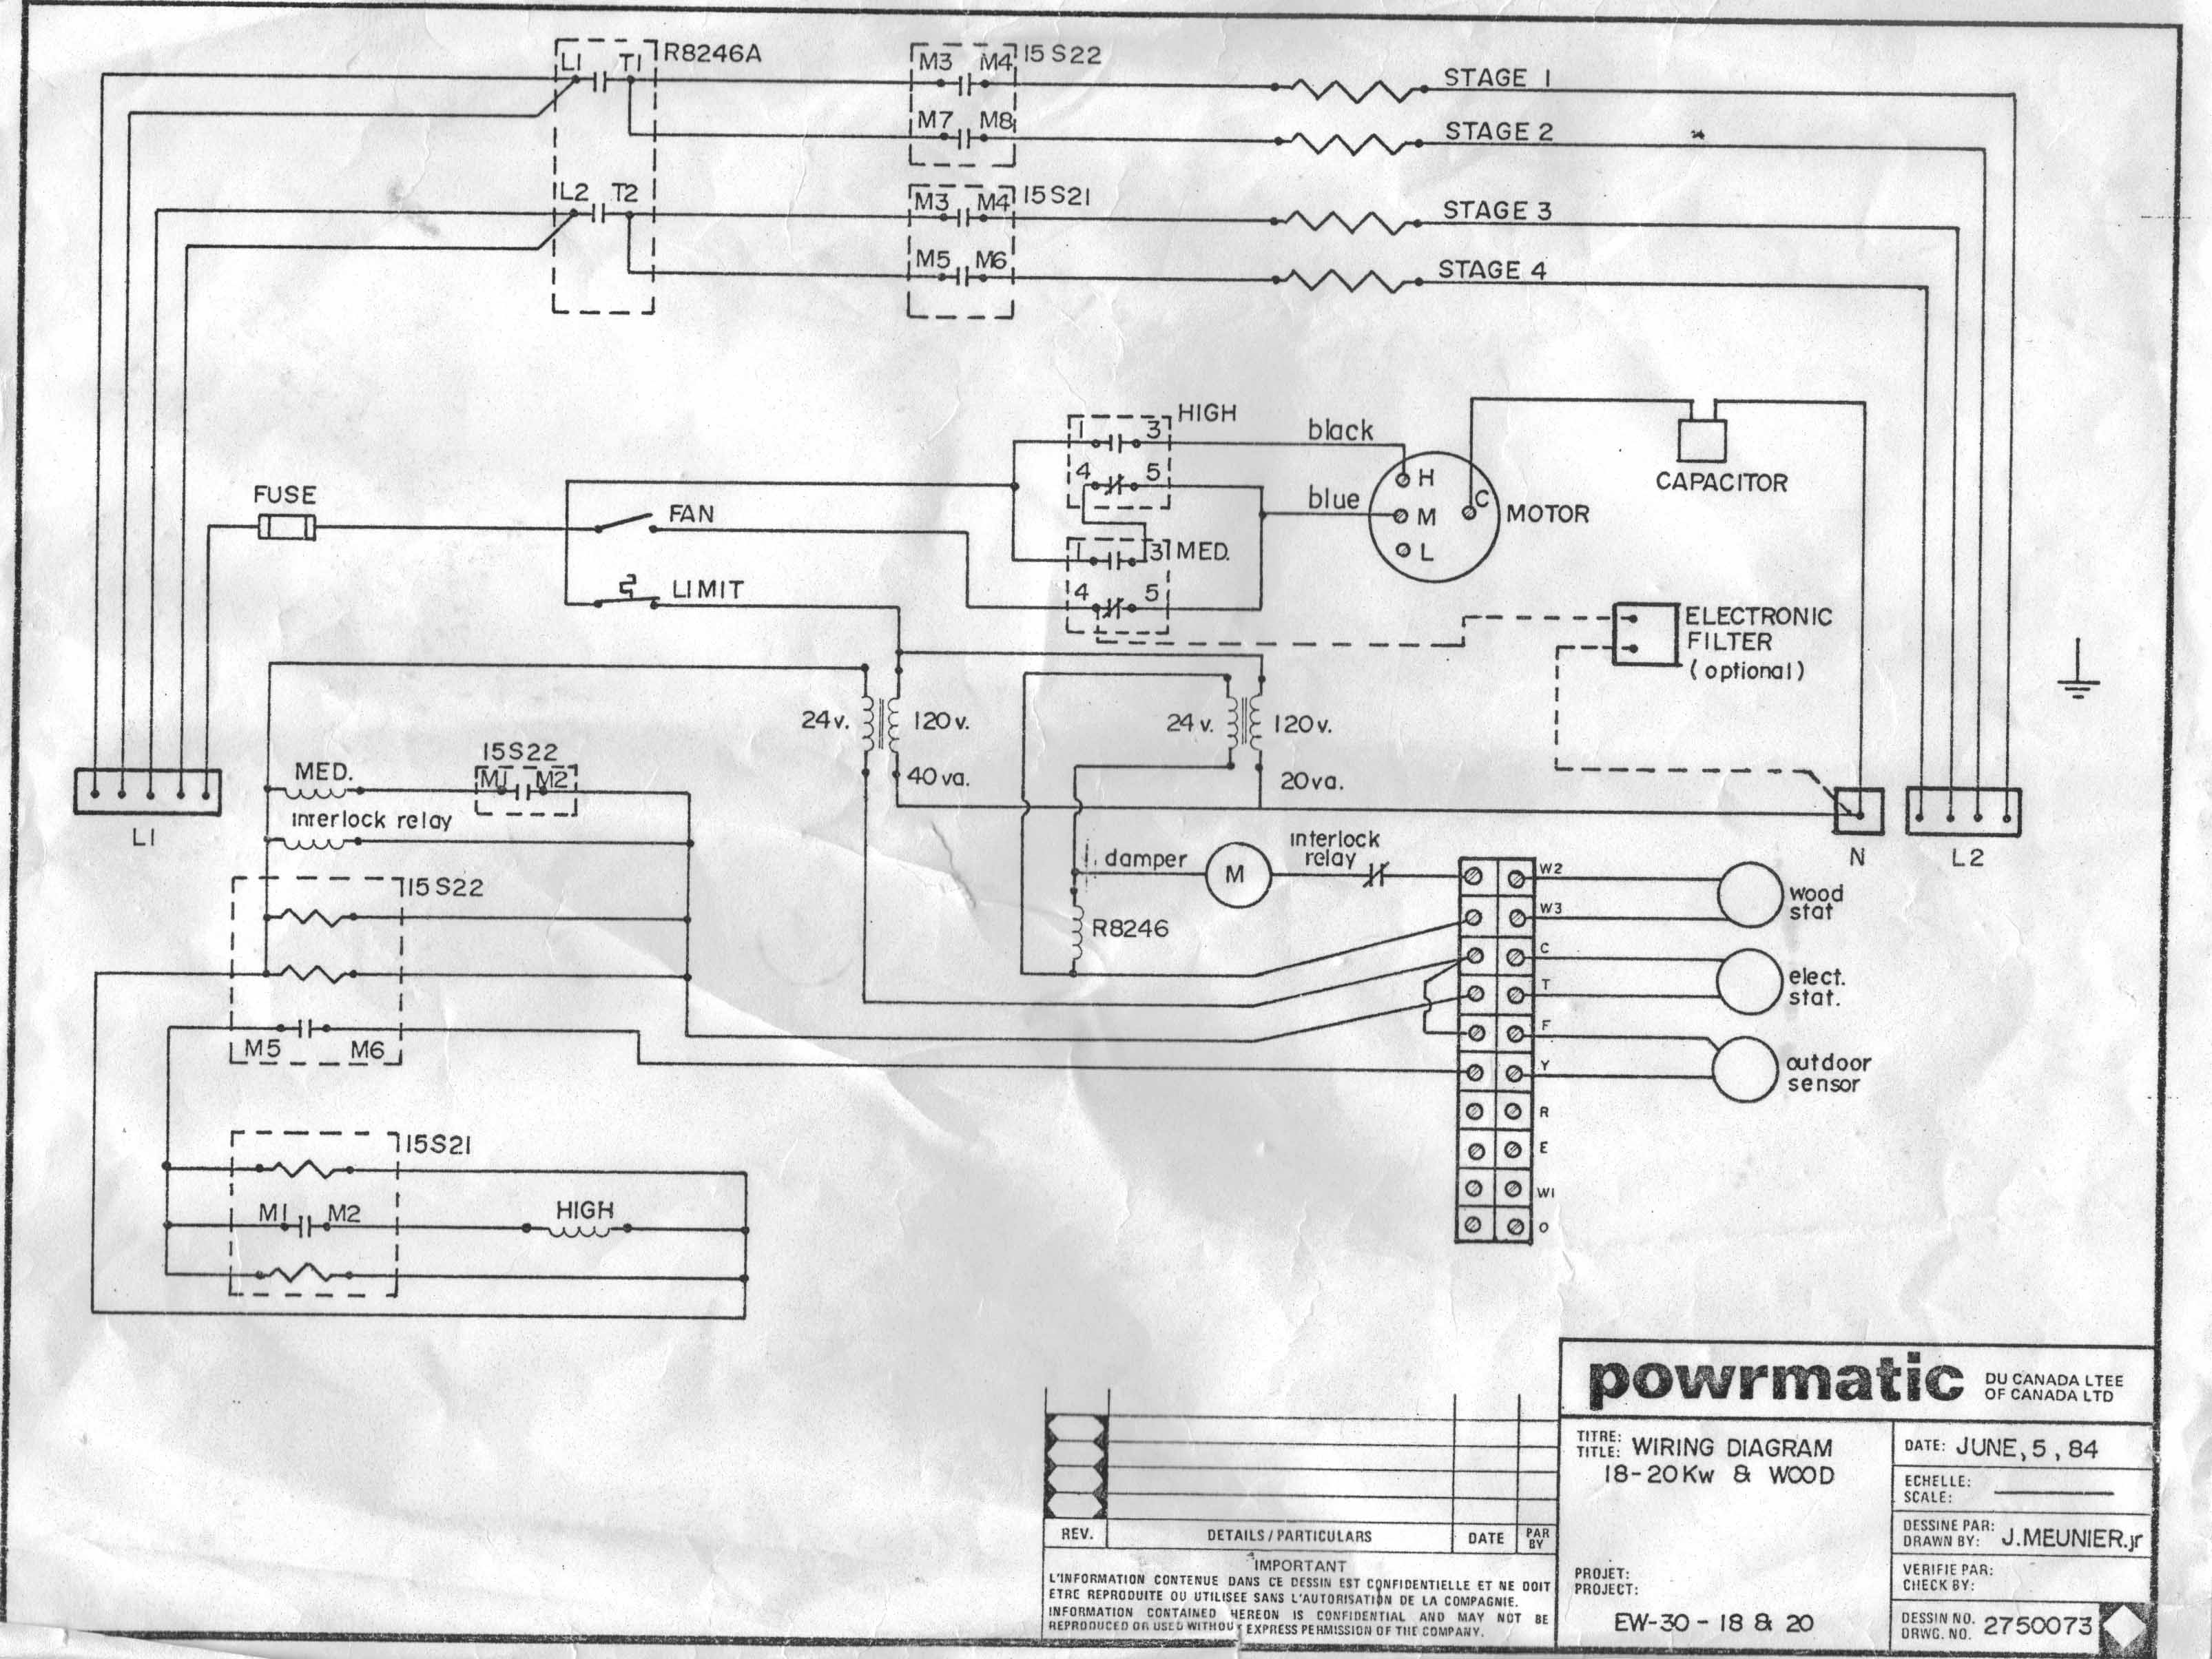 Tremendous Electric Heat Pump Wiring Diagram Intertherm Furnace Basic Wiring Cloud Overrenstrafr09Org